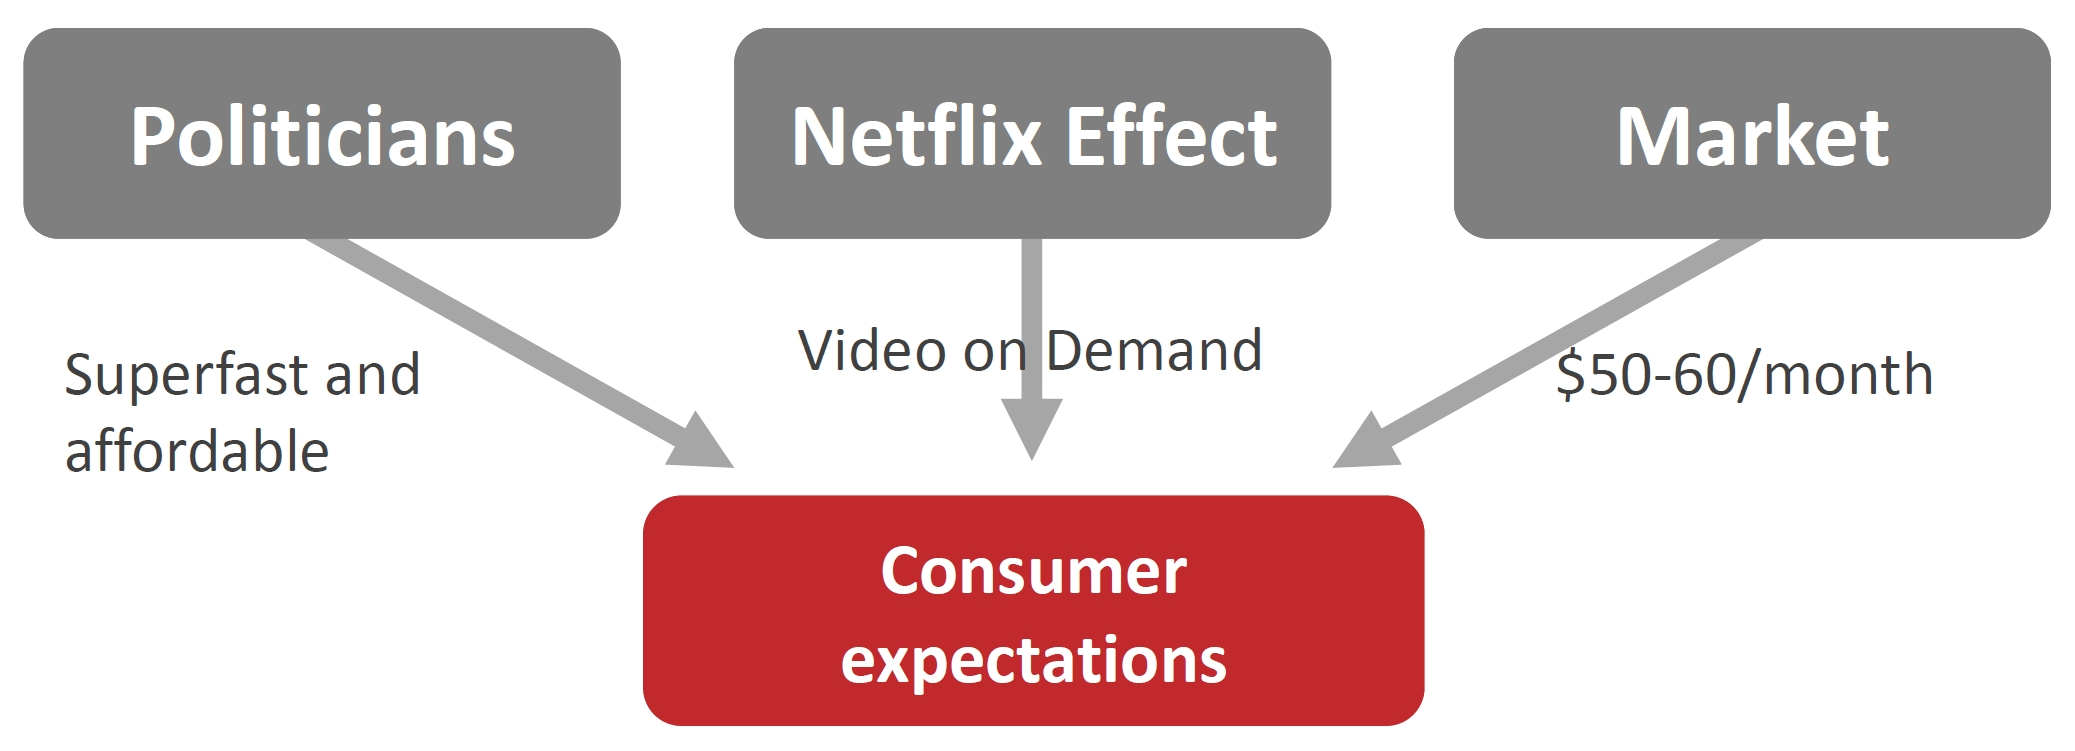 The different influences on consumer expectations